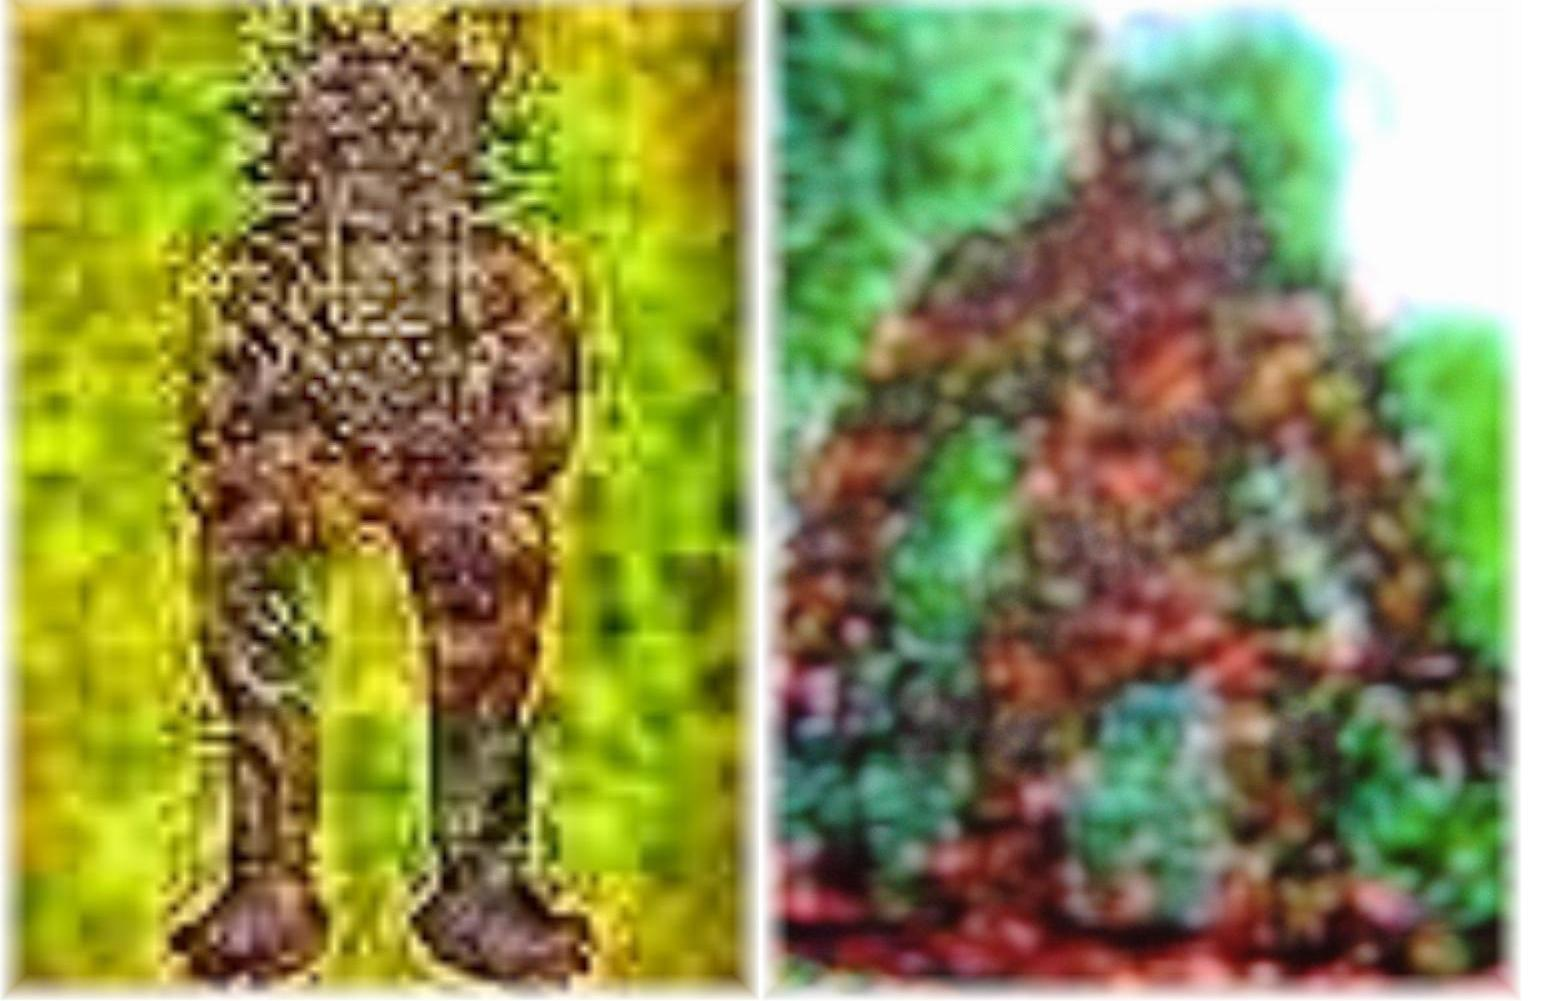 click on photo for normal sized picture and comparison with the michigan dogman this maya statue shares startling physical appearance with the michigan